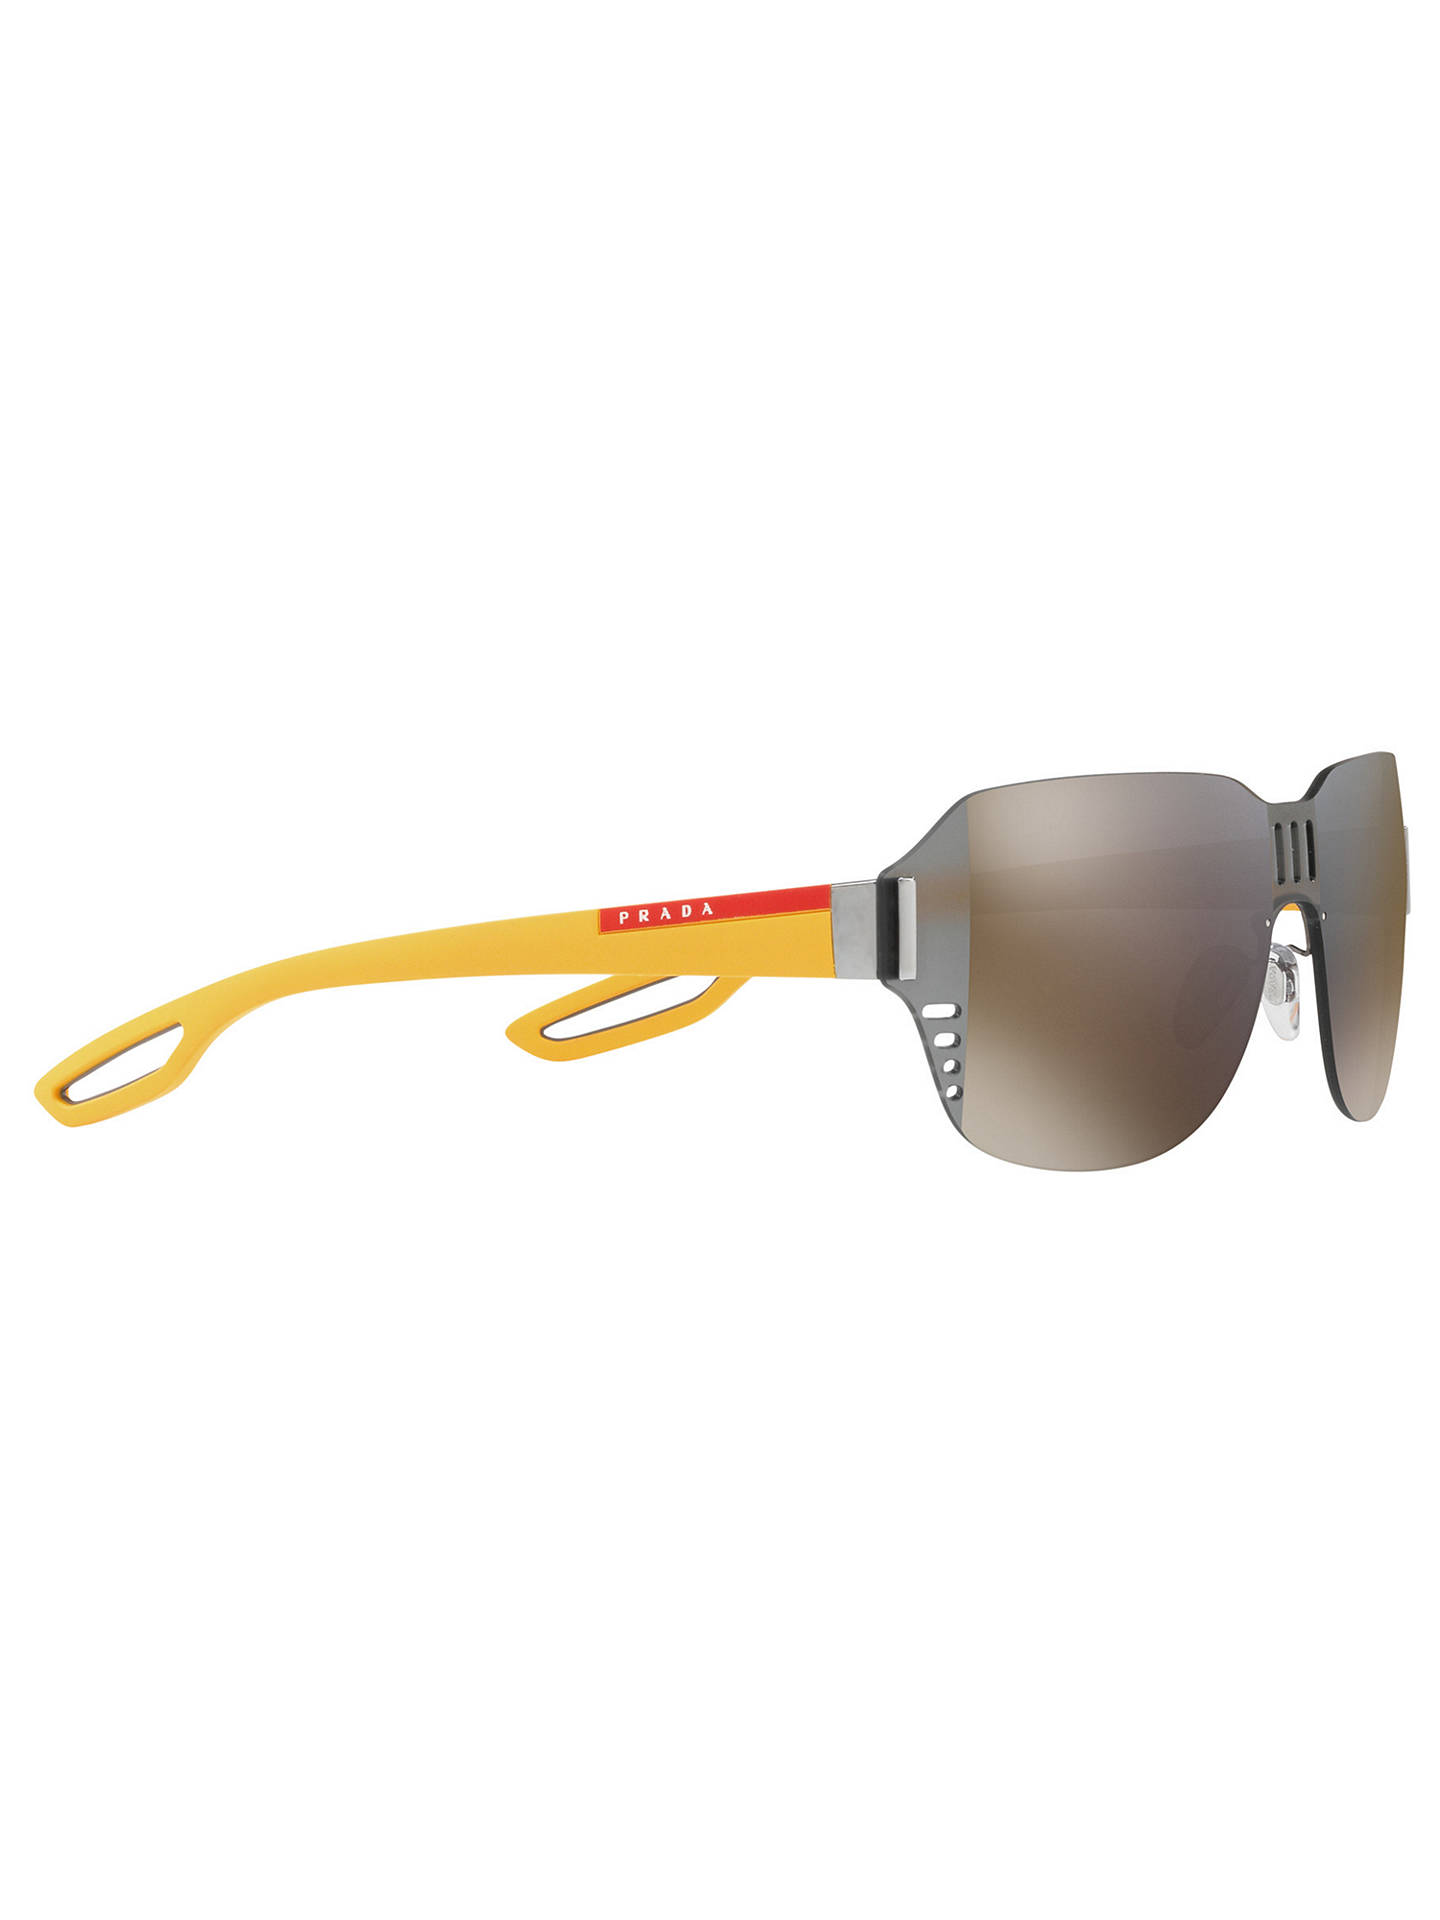 91129f52a419 ... hot buyprada linea rossa ps 05ss square sunglasses yellow mirror brown  online at johnlewis. 9a6c3